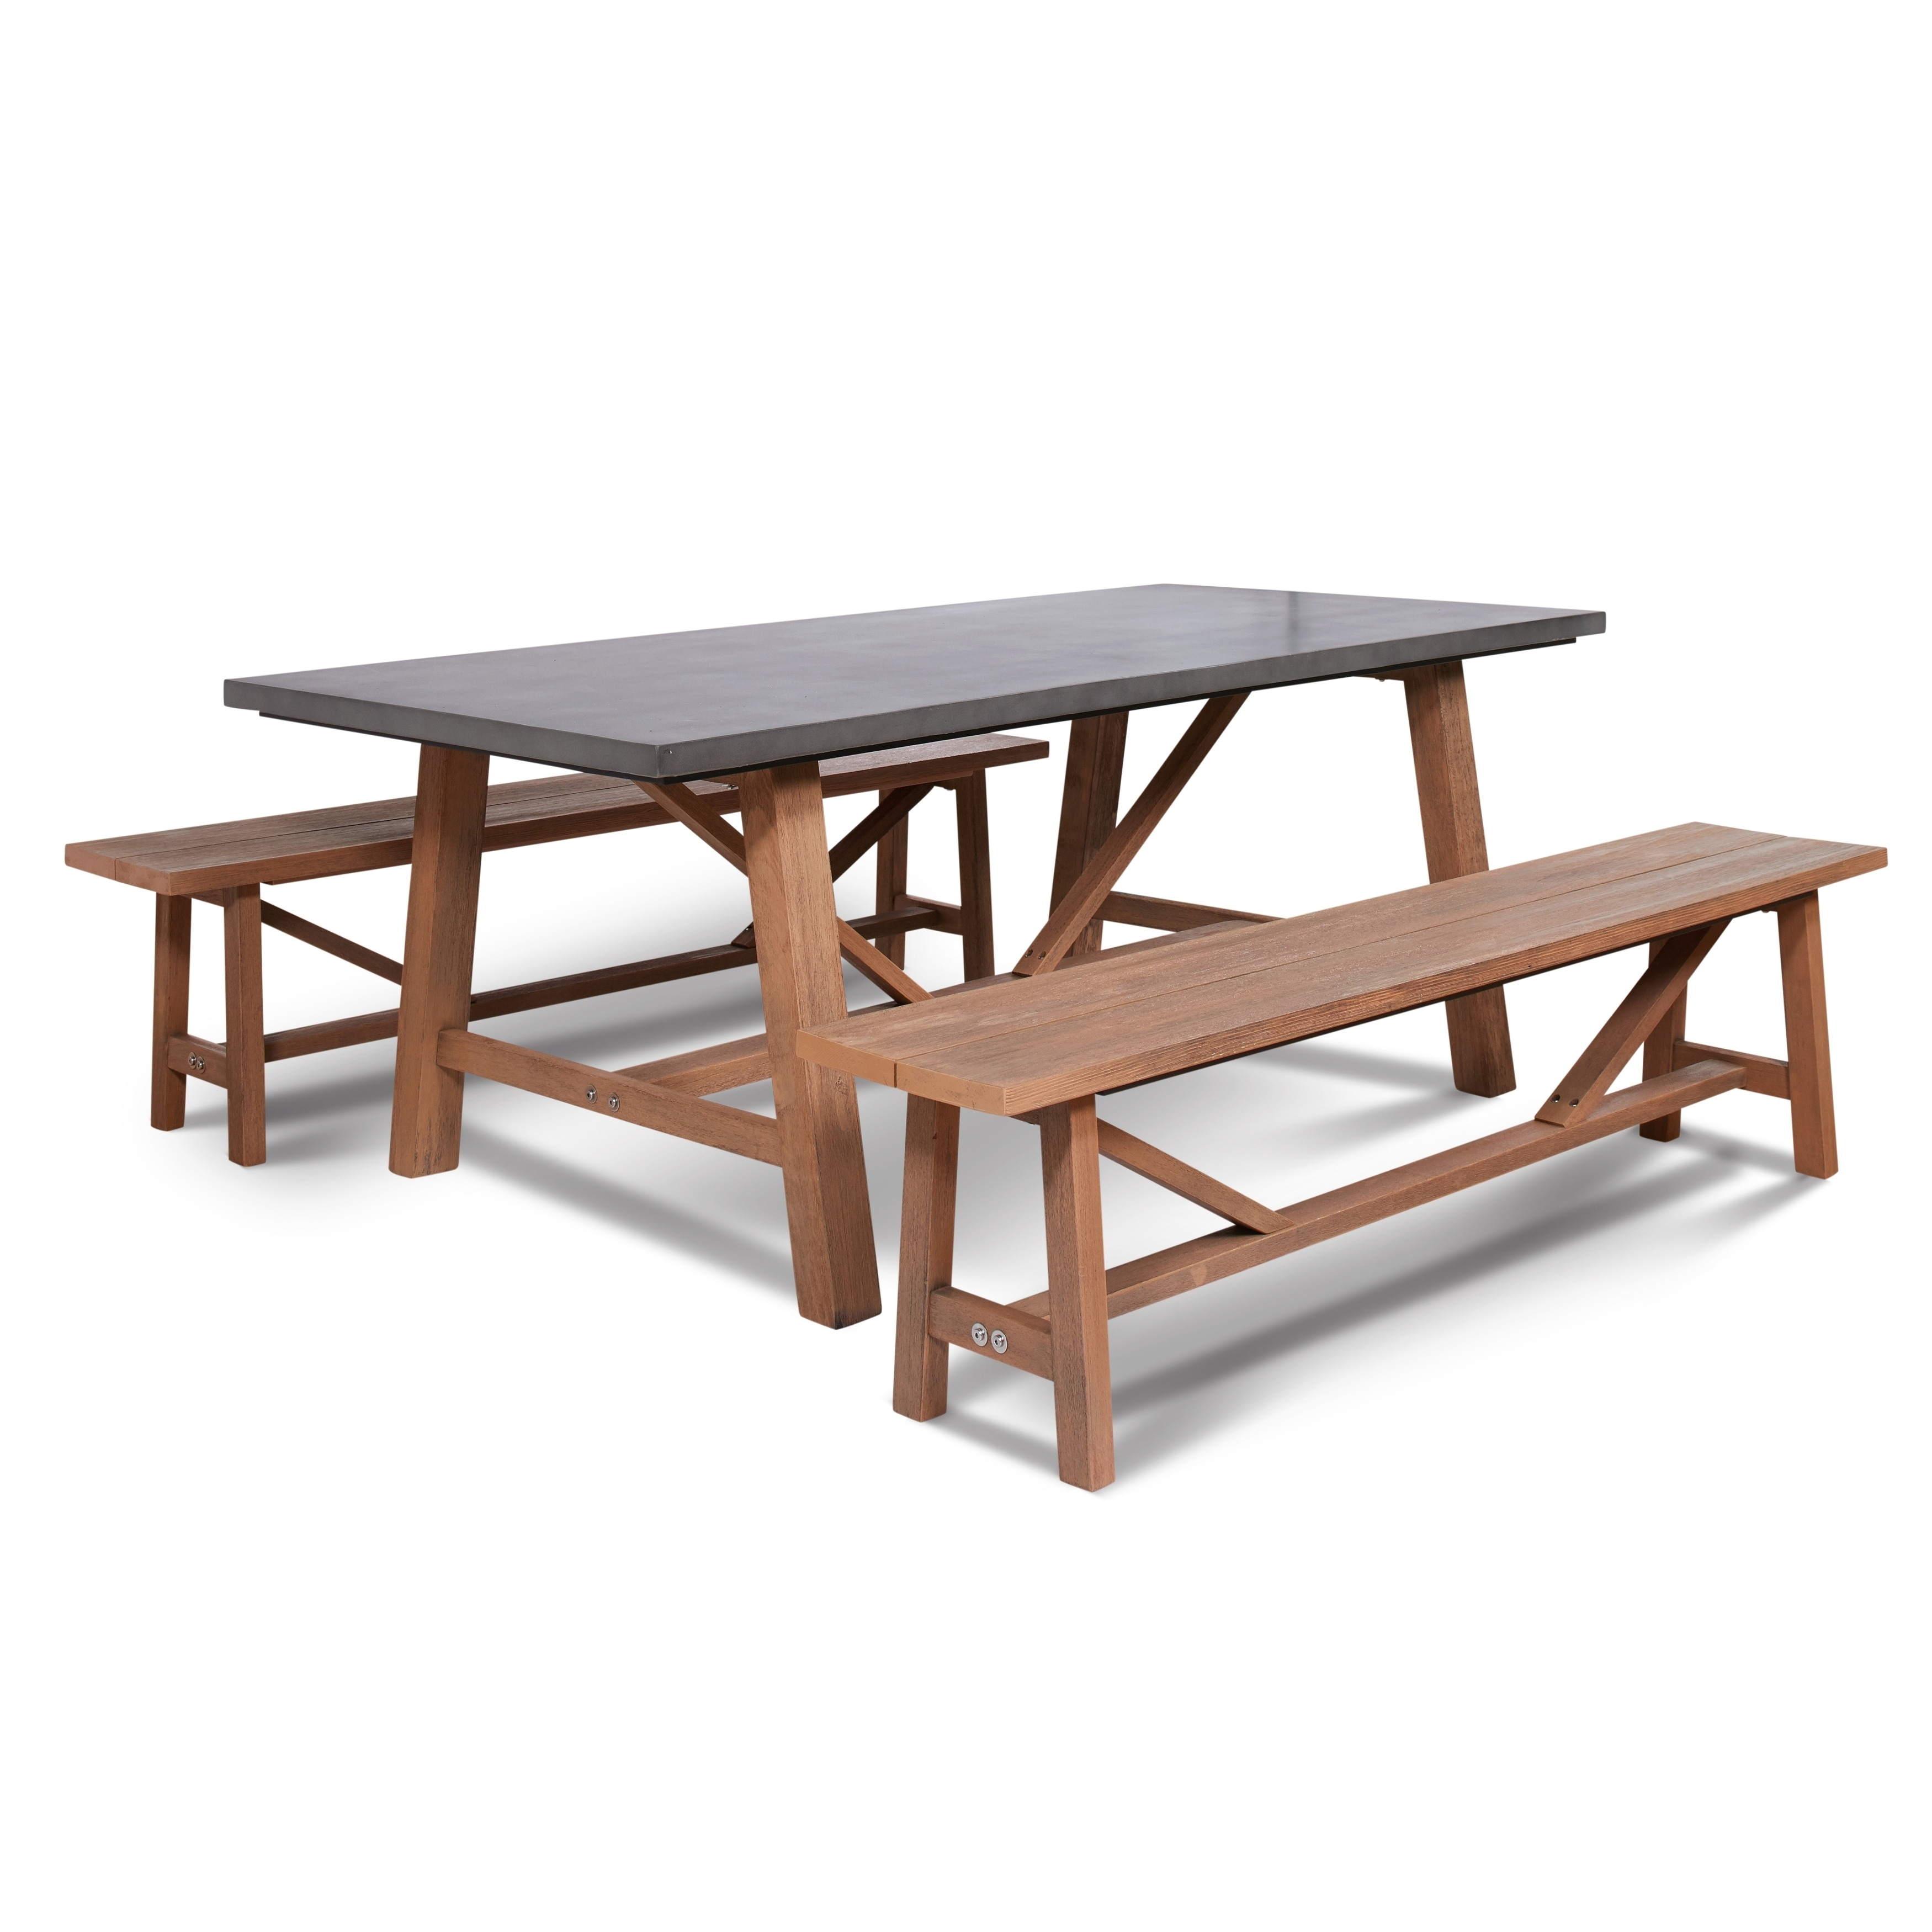 Shop Amalfi Cement Outdoor Dining Set With 2 Wood Benches   On Sale   Free  Shipping Today   Overstock.com   20458179